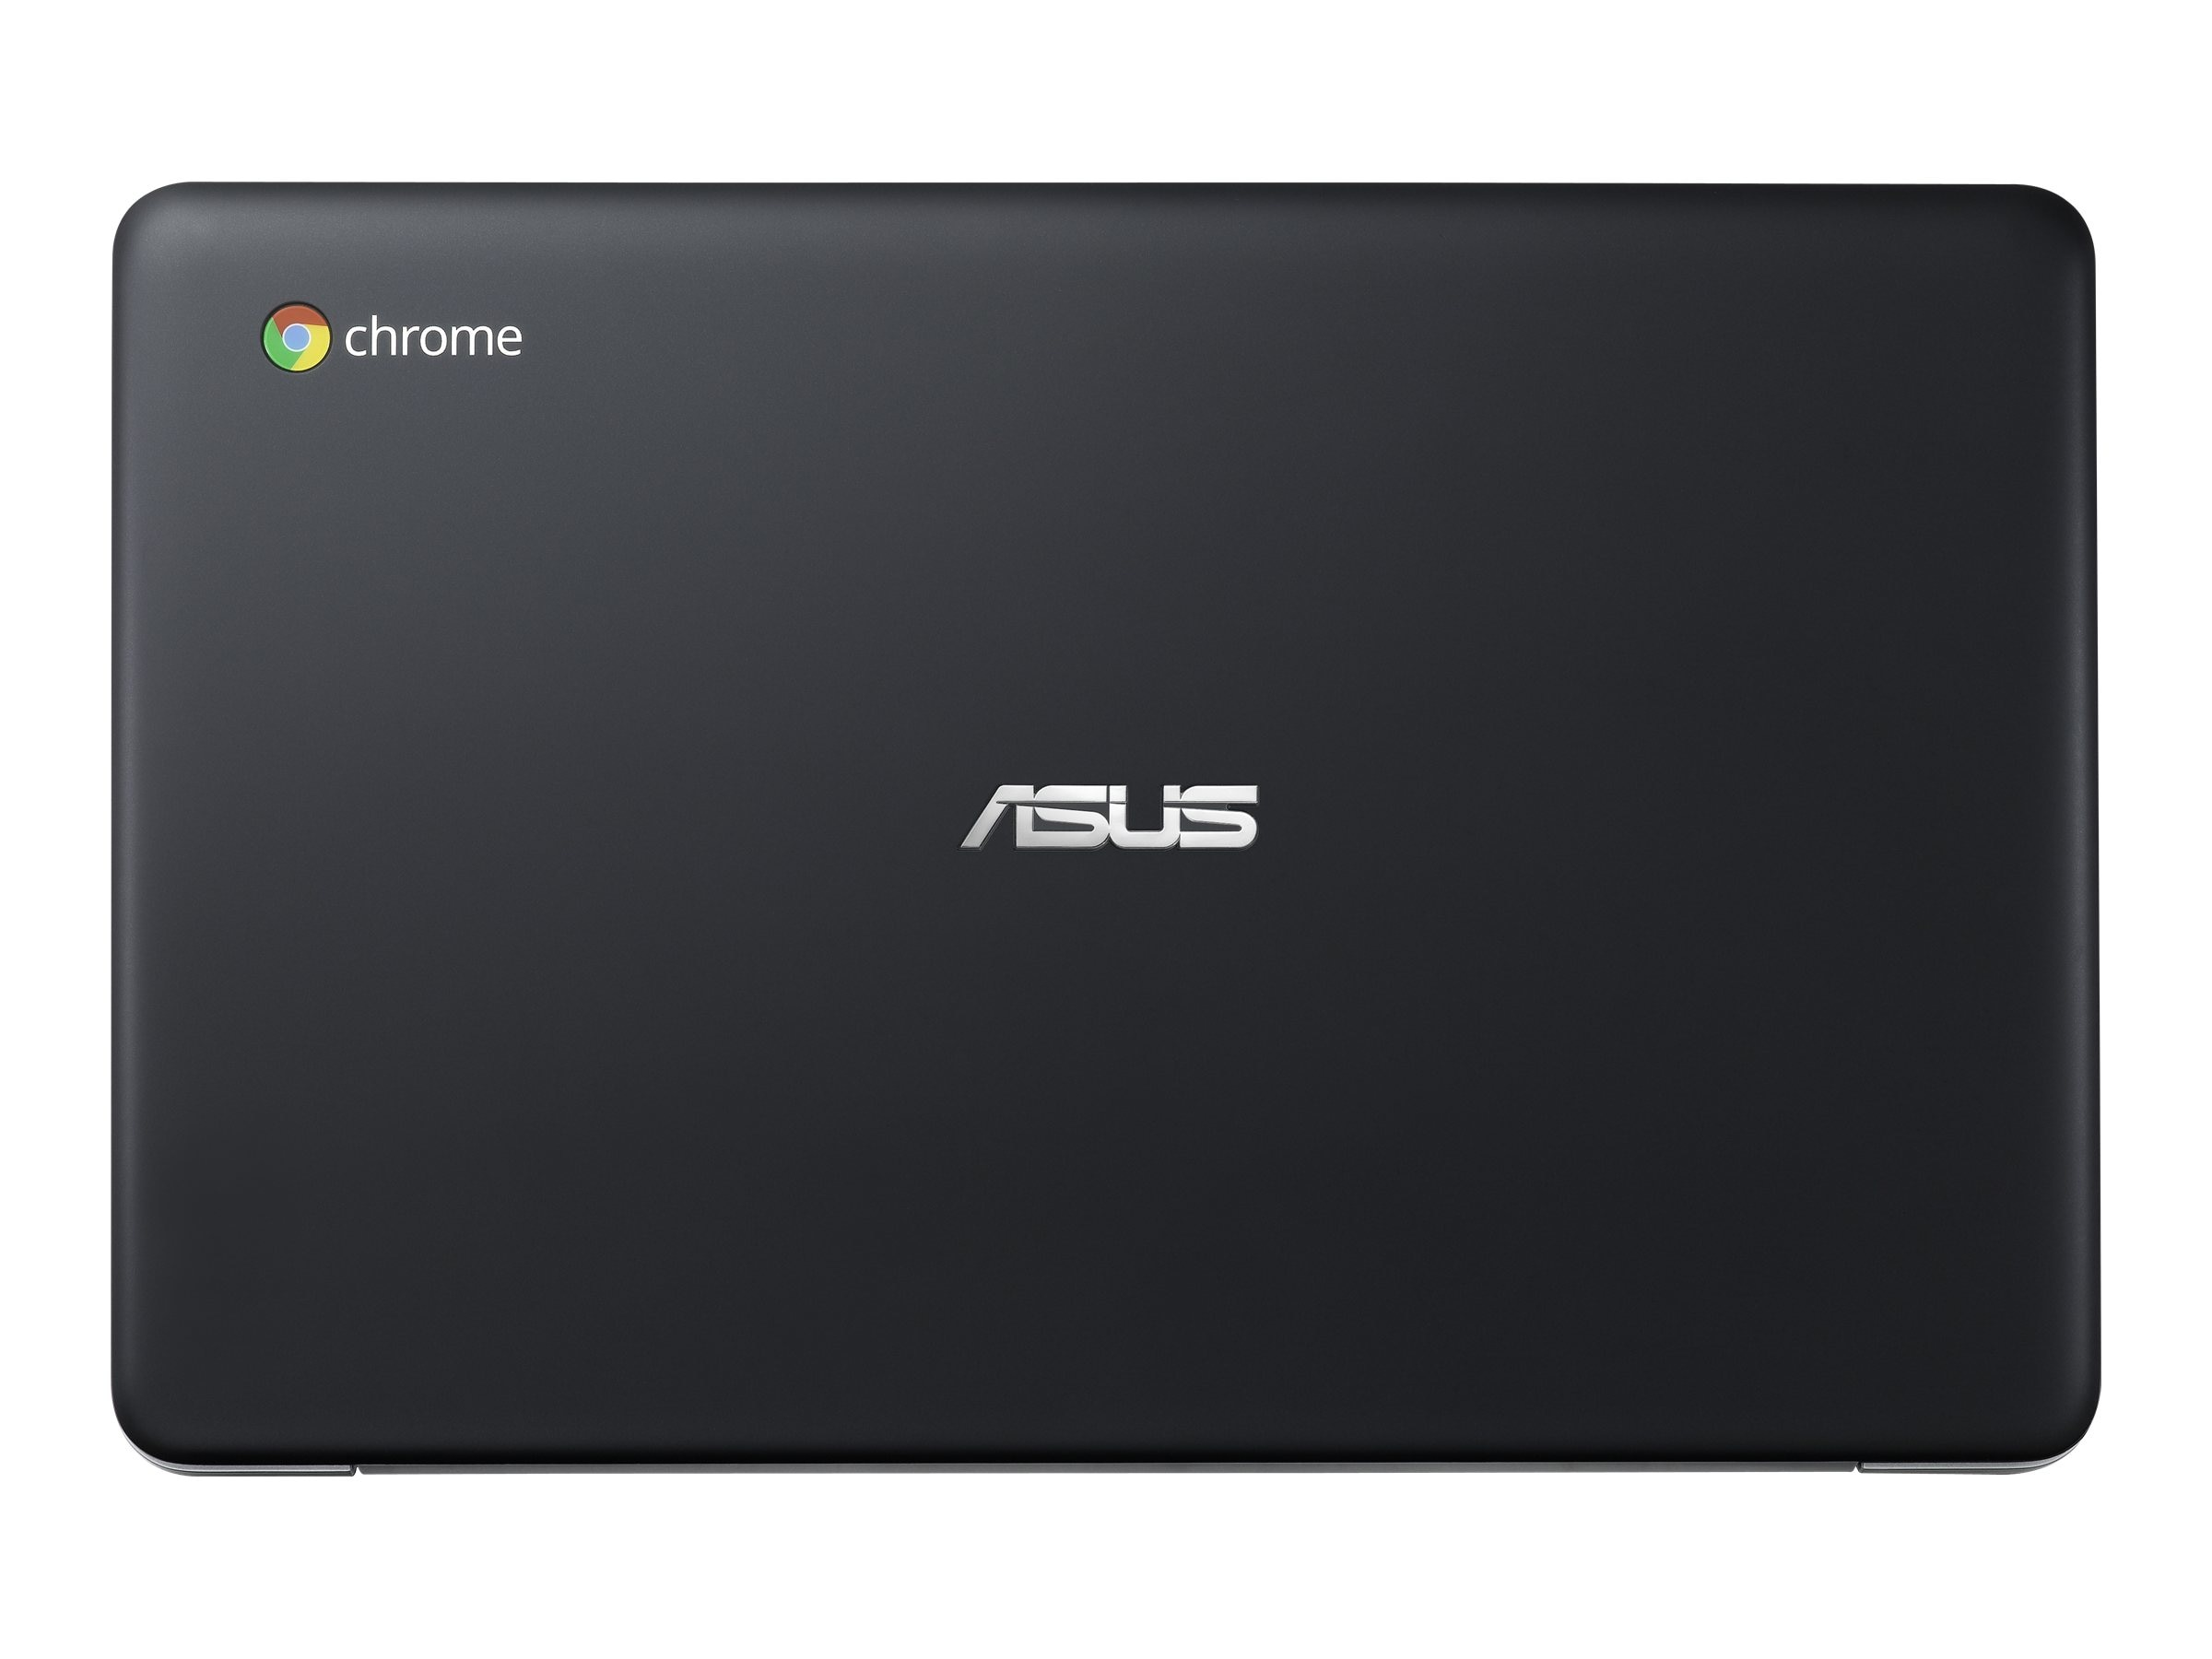 Asus C200MA-DS02 Image 4